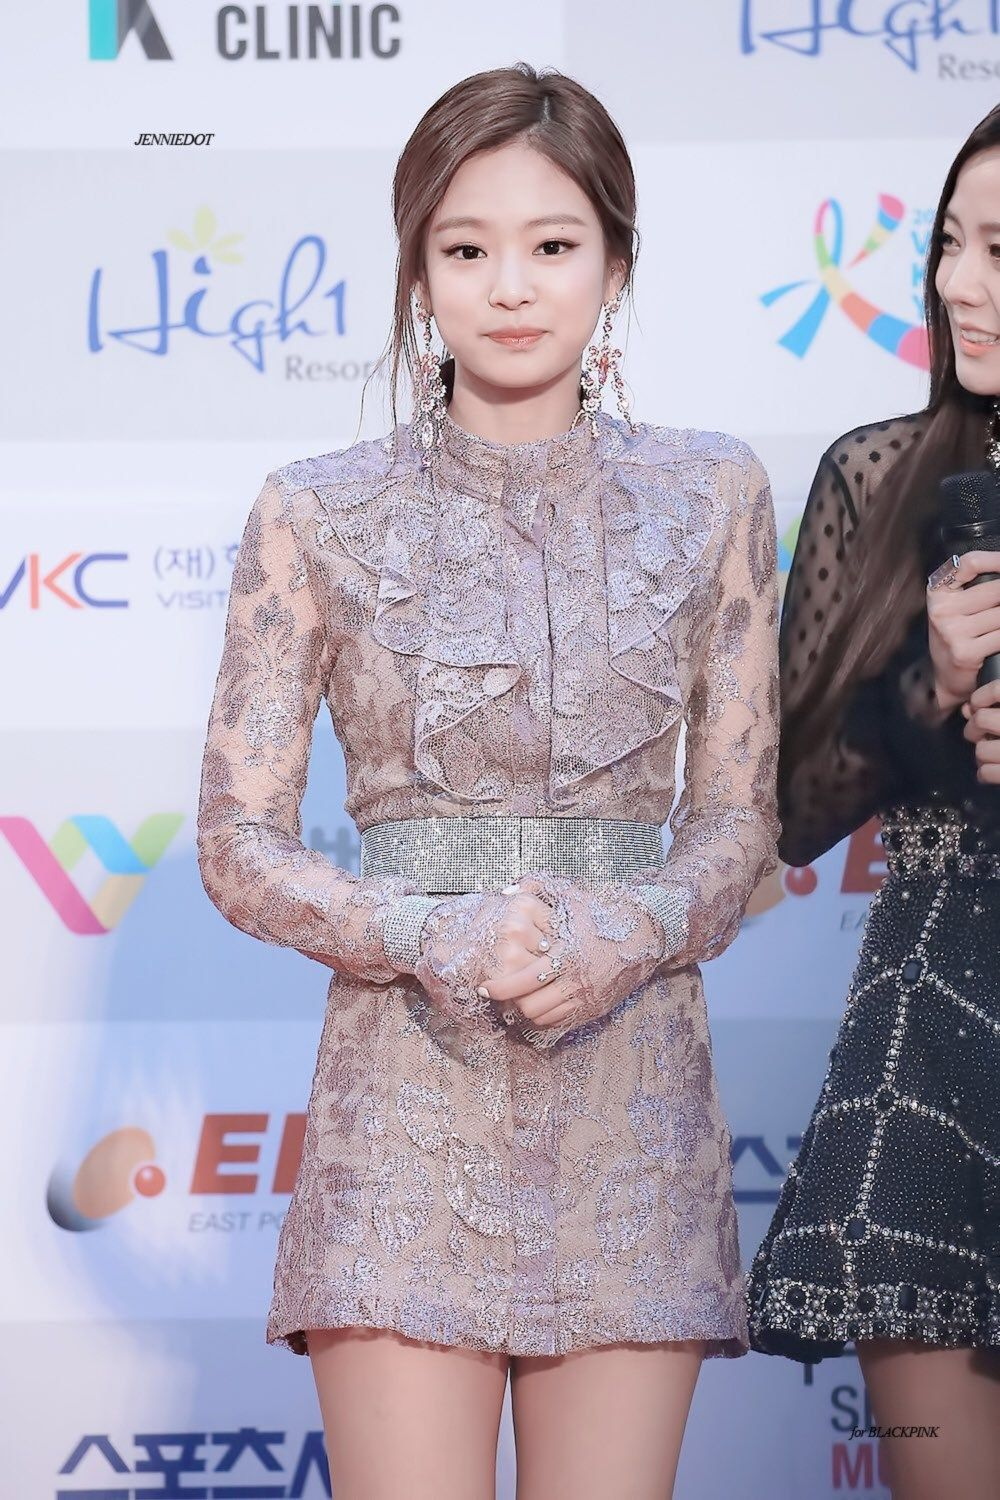 b6e7343b55c BLACKPINK s Jennie recently stunned fans with her classy red carpet look  for the Seoul Music Awards. Jennie continues to blow fans away with her ...